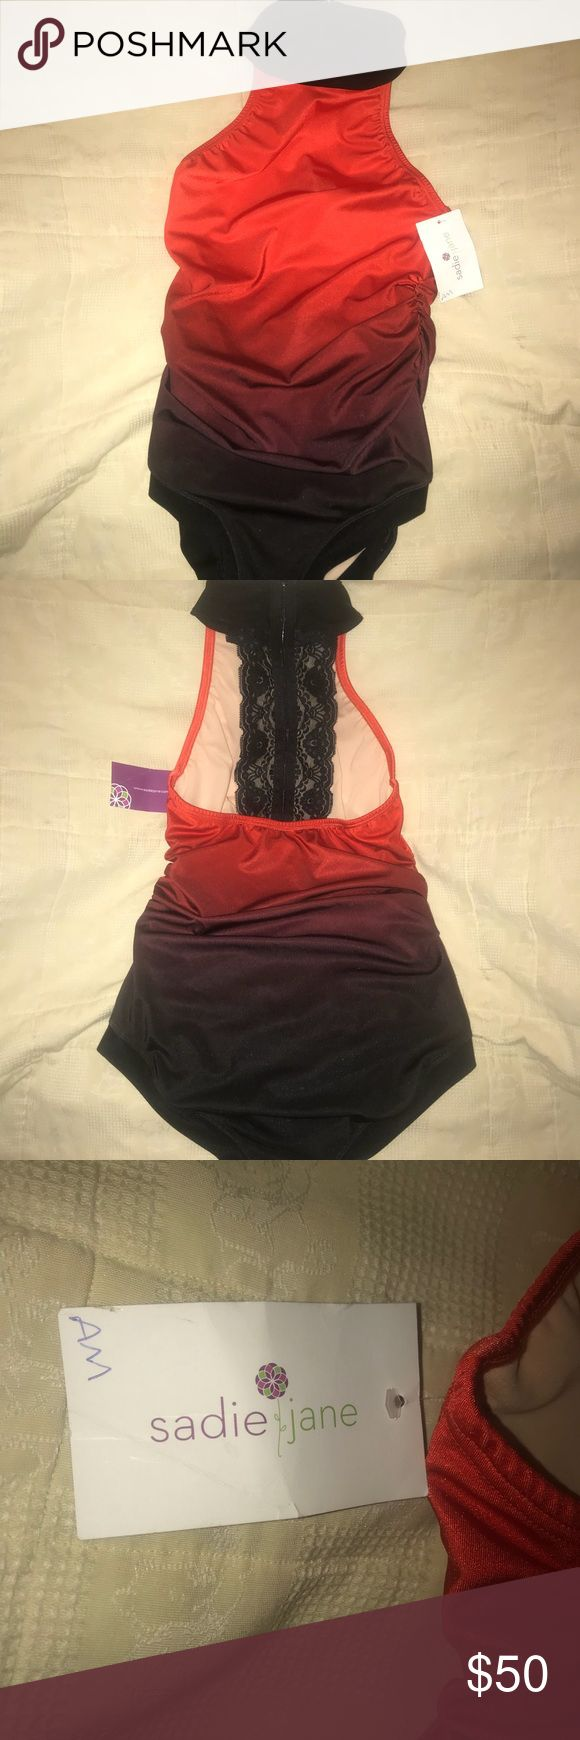 Sadie Jane Lace back red ombré leotard Brand new with tags!  Retails for $60. Make offer. Sadie Jane Other